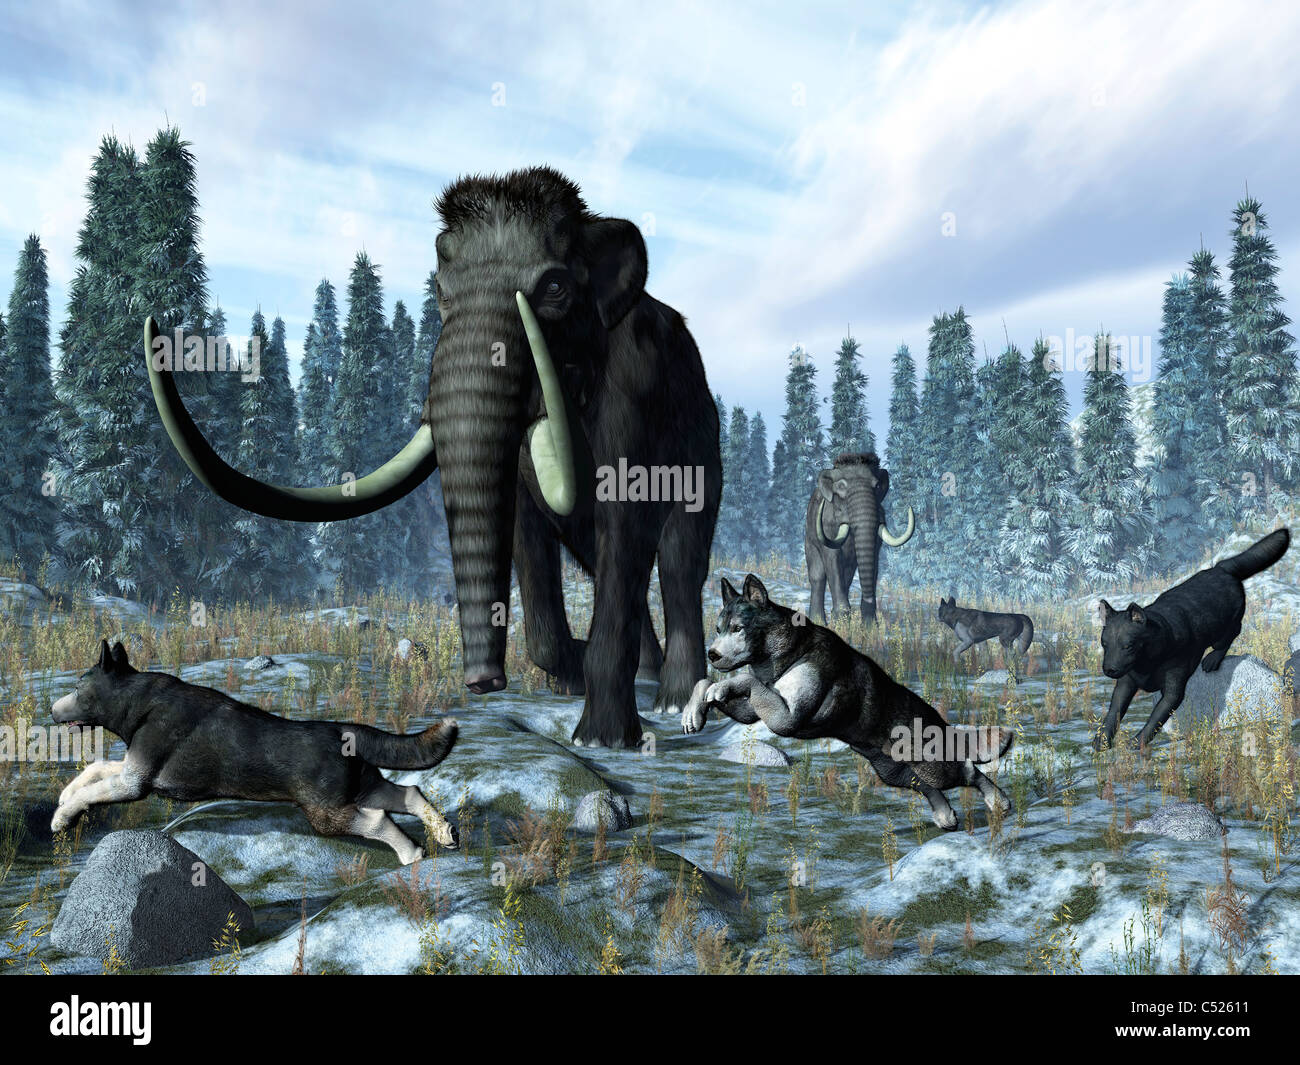 A pack of dire wolves crosses paths with two mammoths during the Upper Pleistocene Epoch. - Stock Image